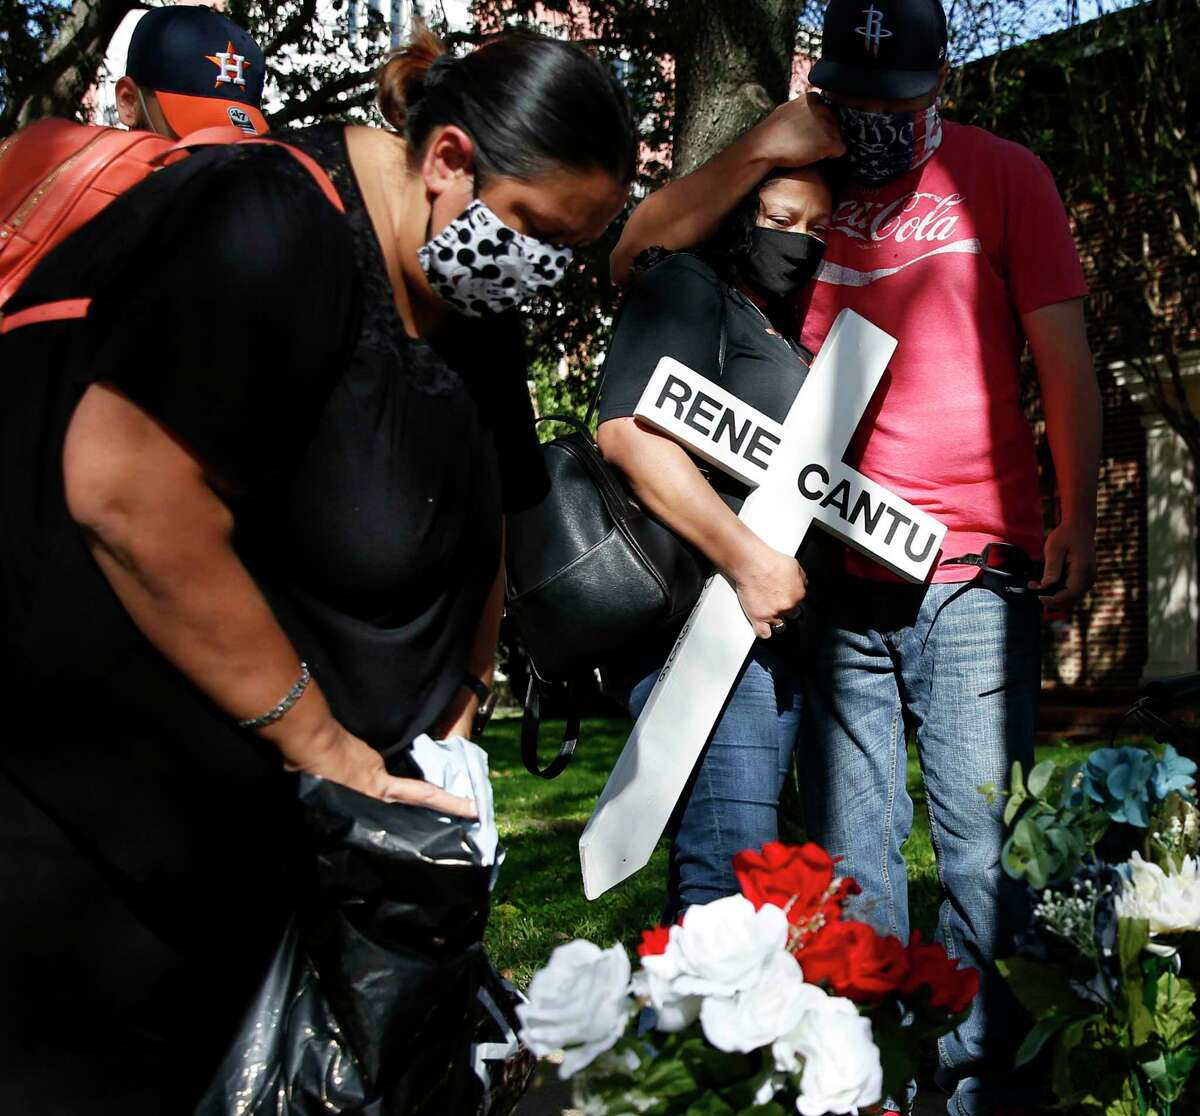 Michele Ramirez, from left, add flowers to a marker for Rene Cantu as Velinda Castillo is comforted by her husband Roland, where Cantu was killed while jogging on Montrose Blvd in Houston on Sunday, Nov. 15, 2020. Cantu was one of six people killed in Houston on Monday, November 9, 2020.